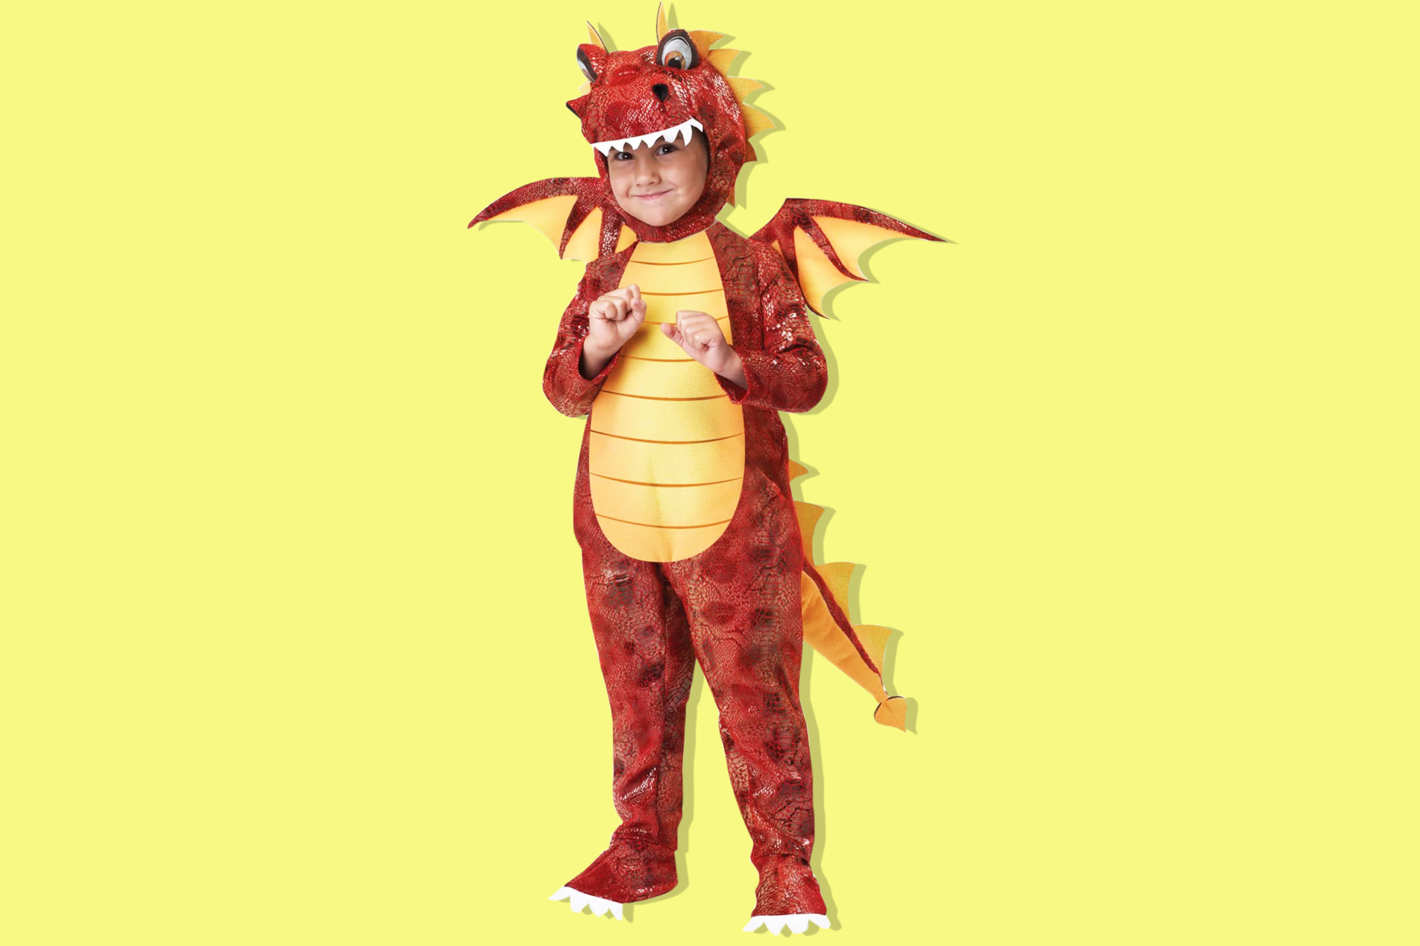 """The 12 Best Halloween Costumes for Kids on Amazon, According to Hyperenthusiastic Reviewers"""